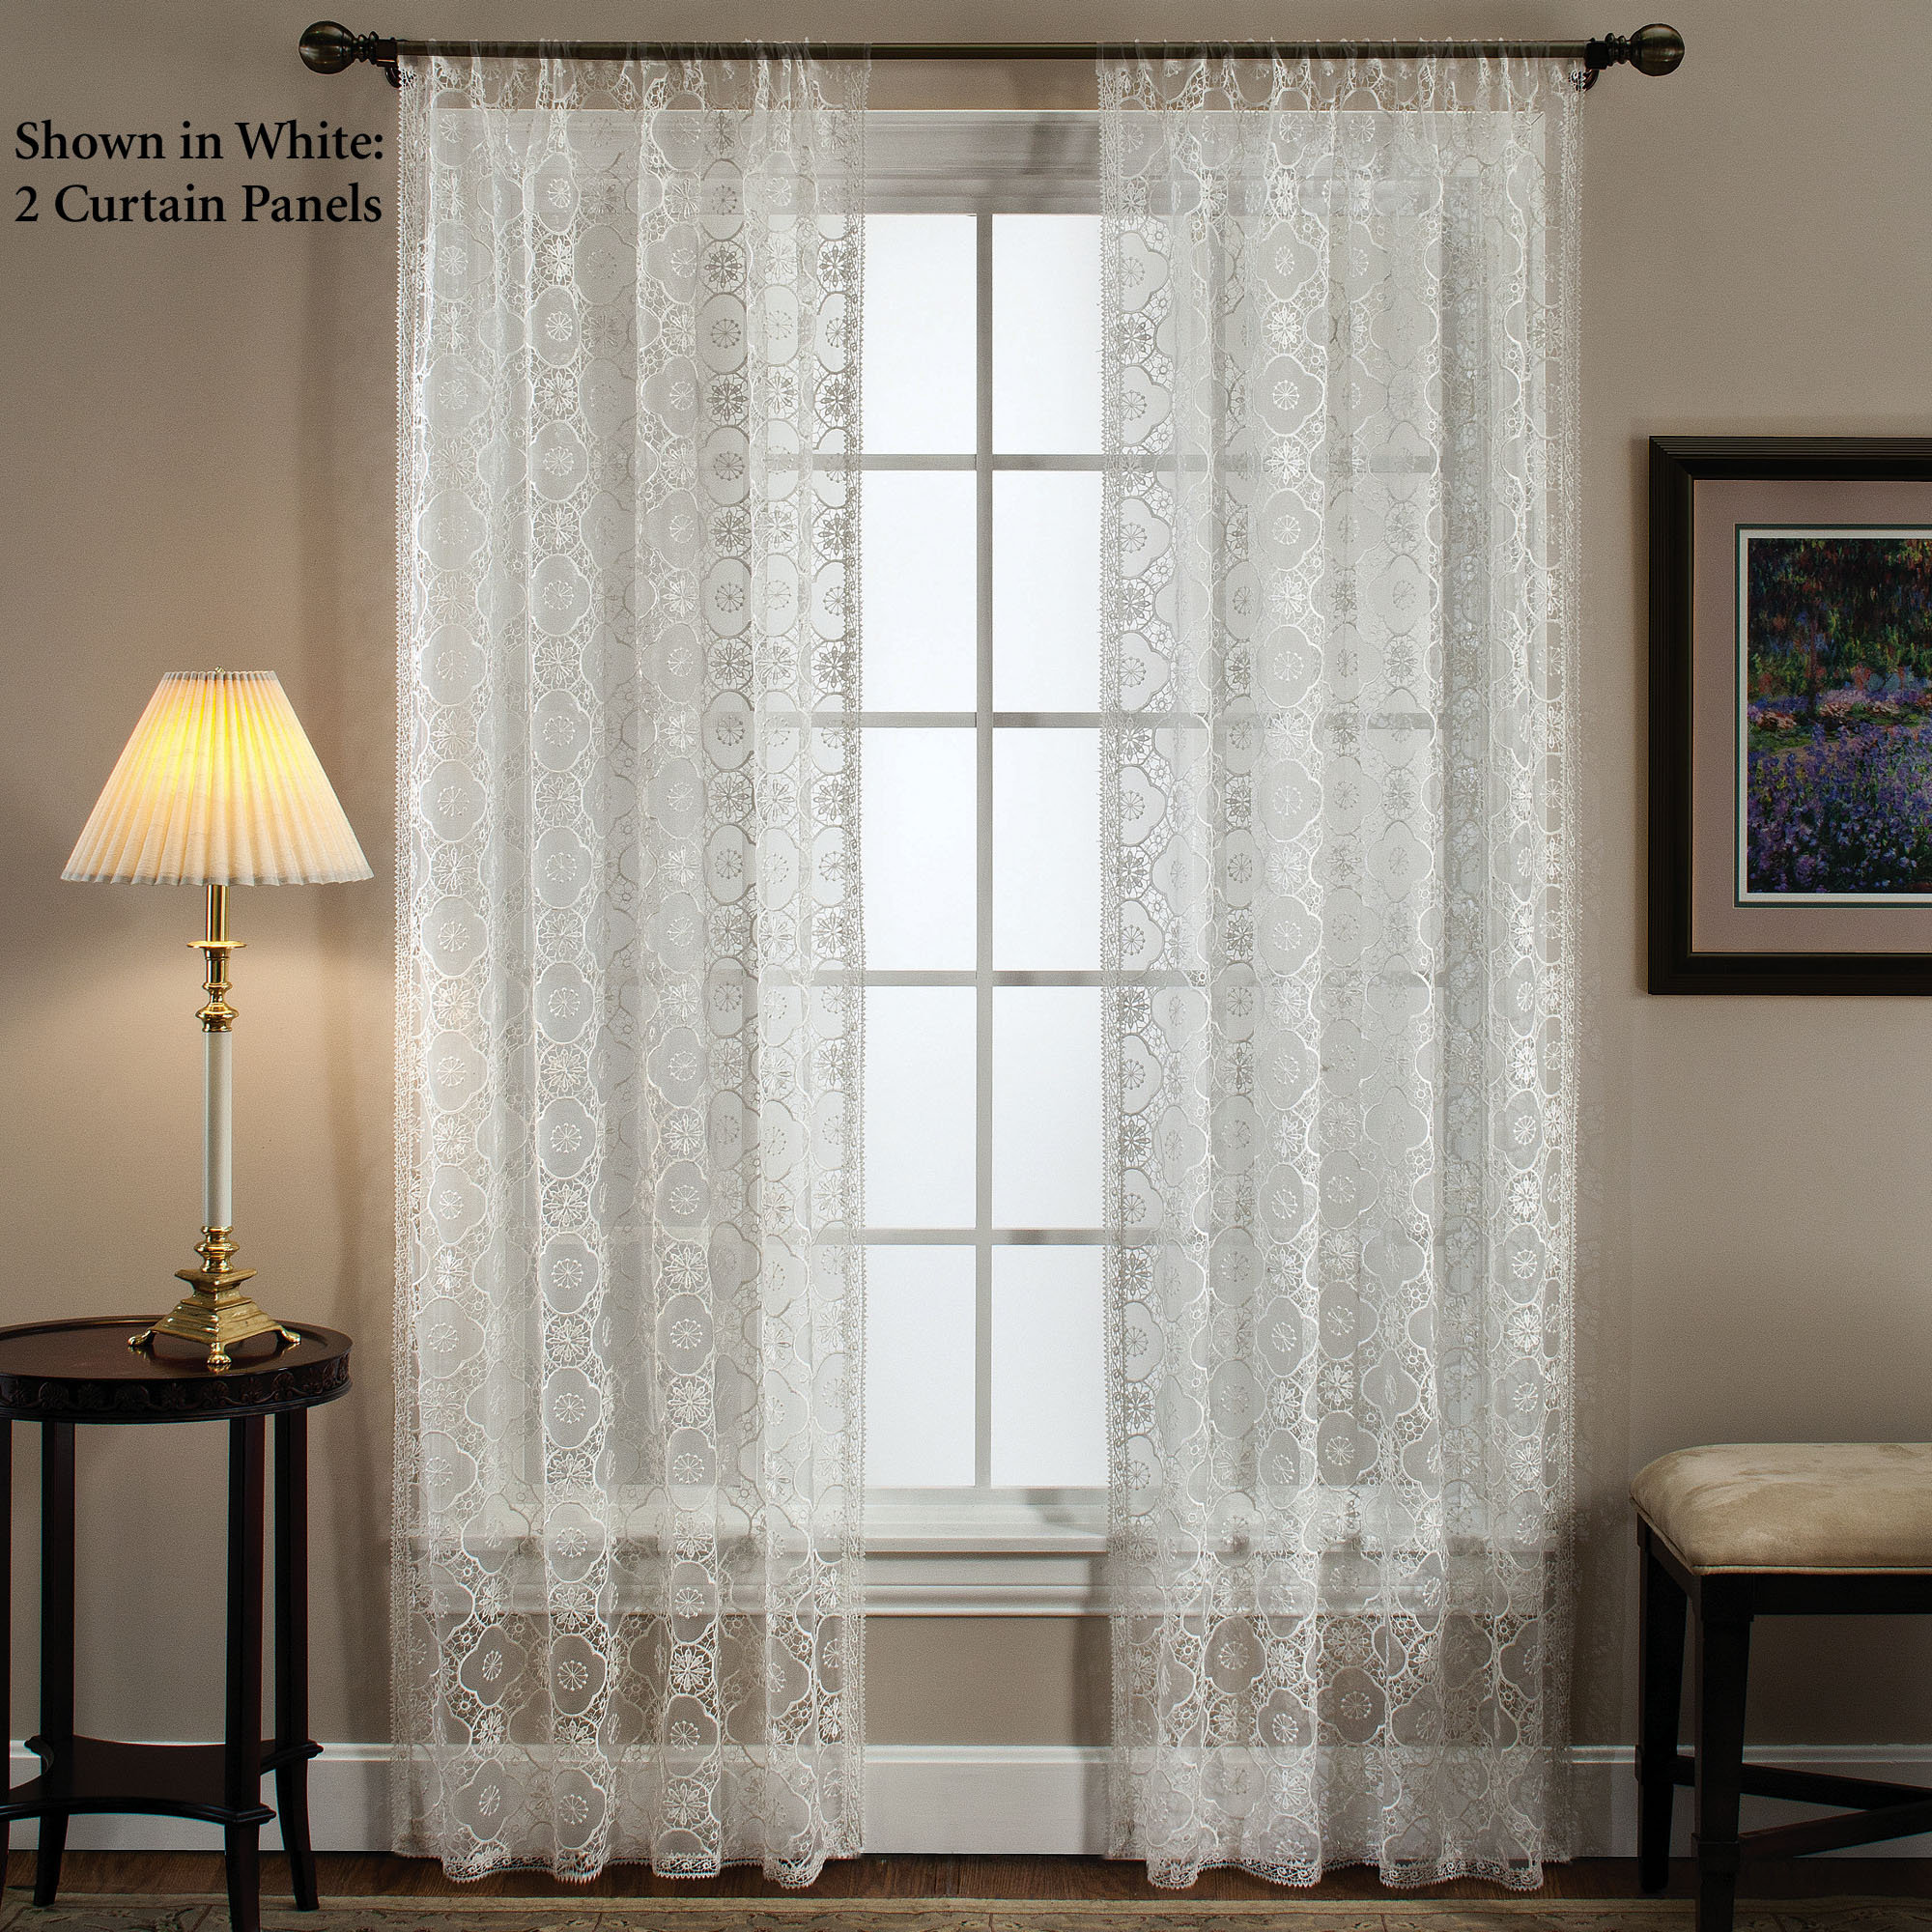 Lace bathroom window curtains - Lace Curtain Window Image Gallery Of Lace Curtain Window Panels